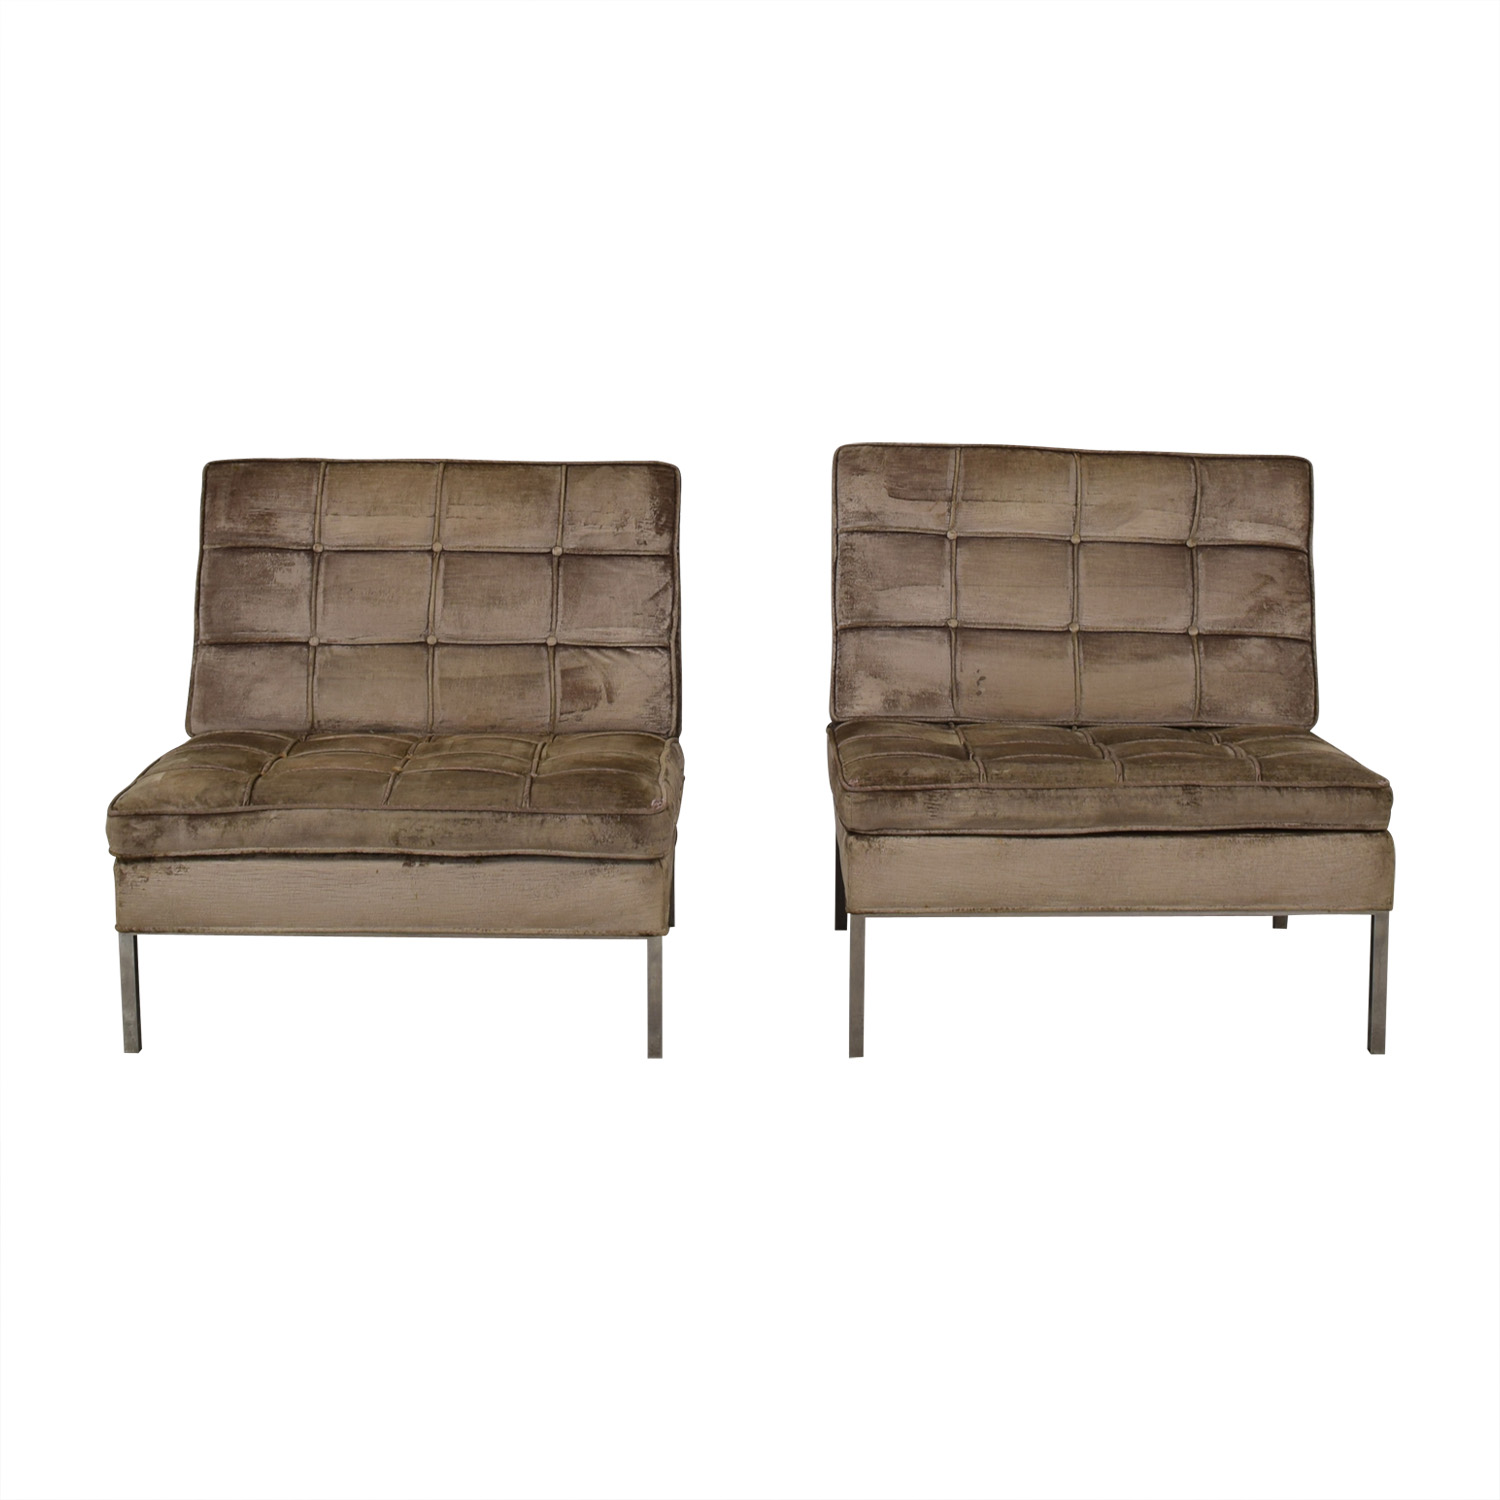 Knoll Knoll Beige Tufted Velvet Accent Chairs beige